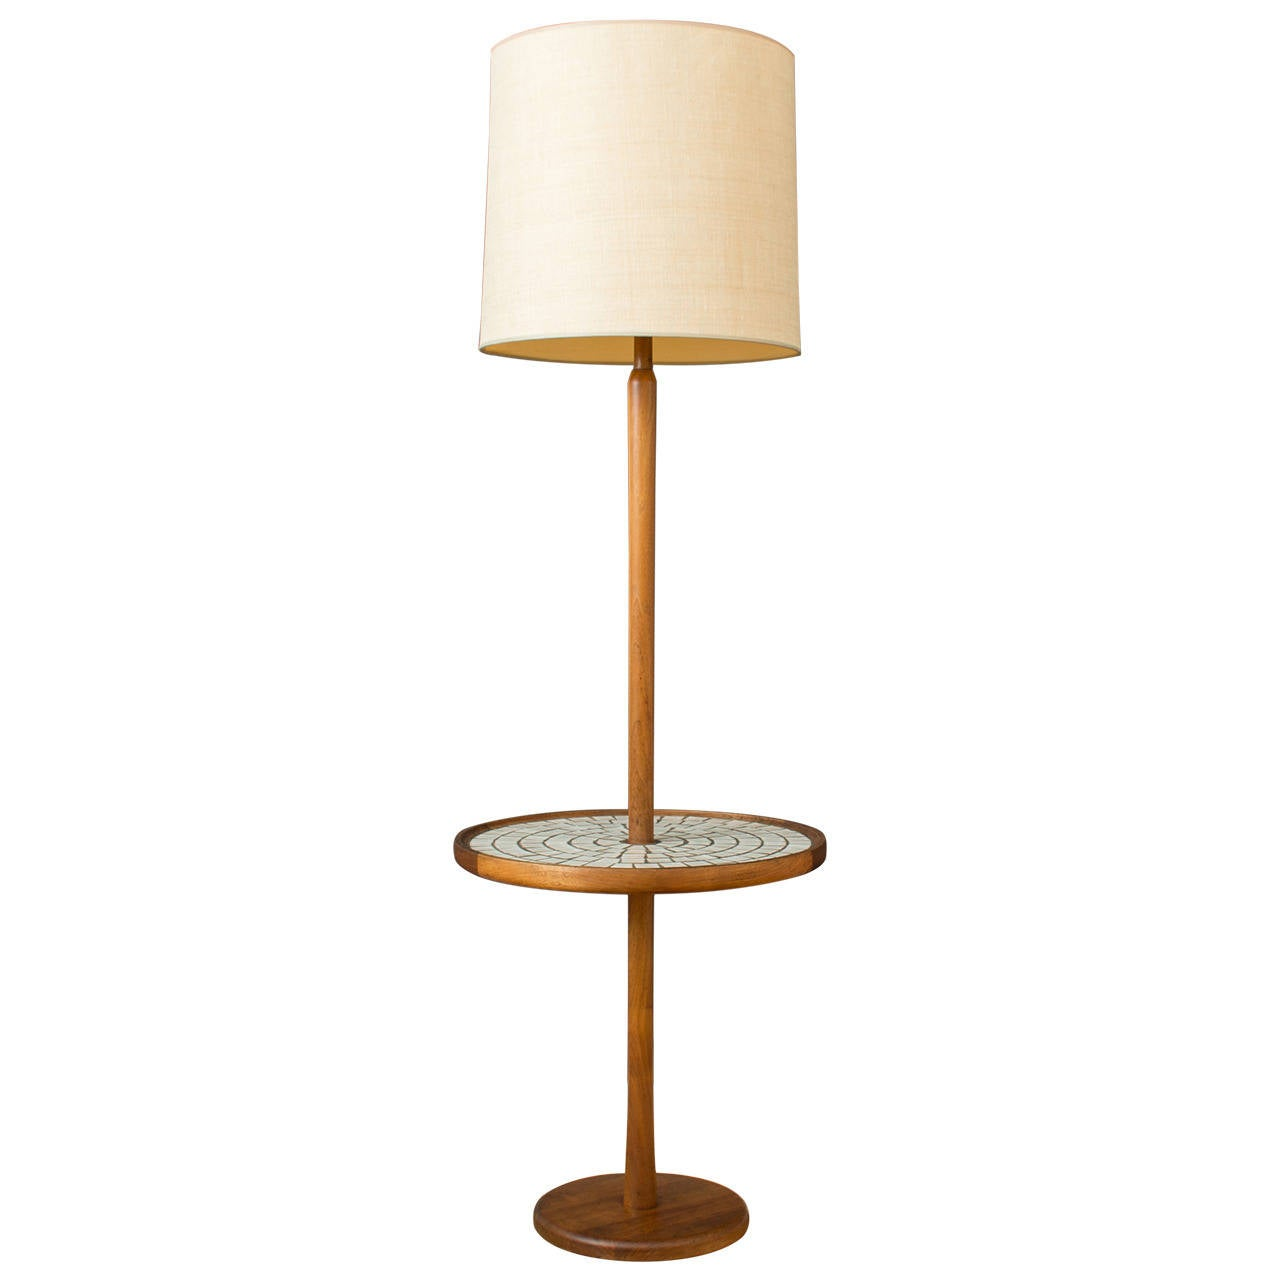 Vintage floor lamp with mosaic table by gordon and jane for Floor lamp mosaic wood